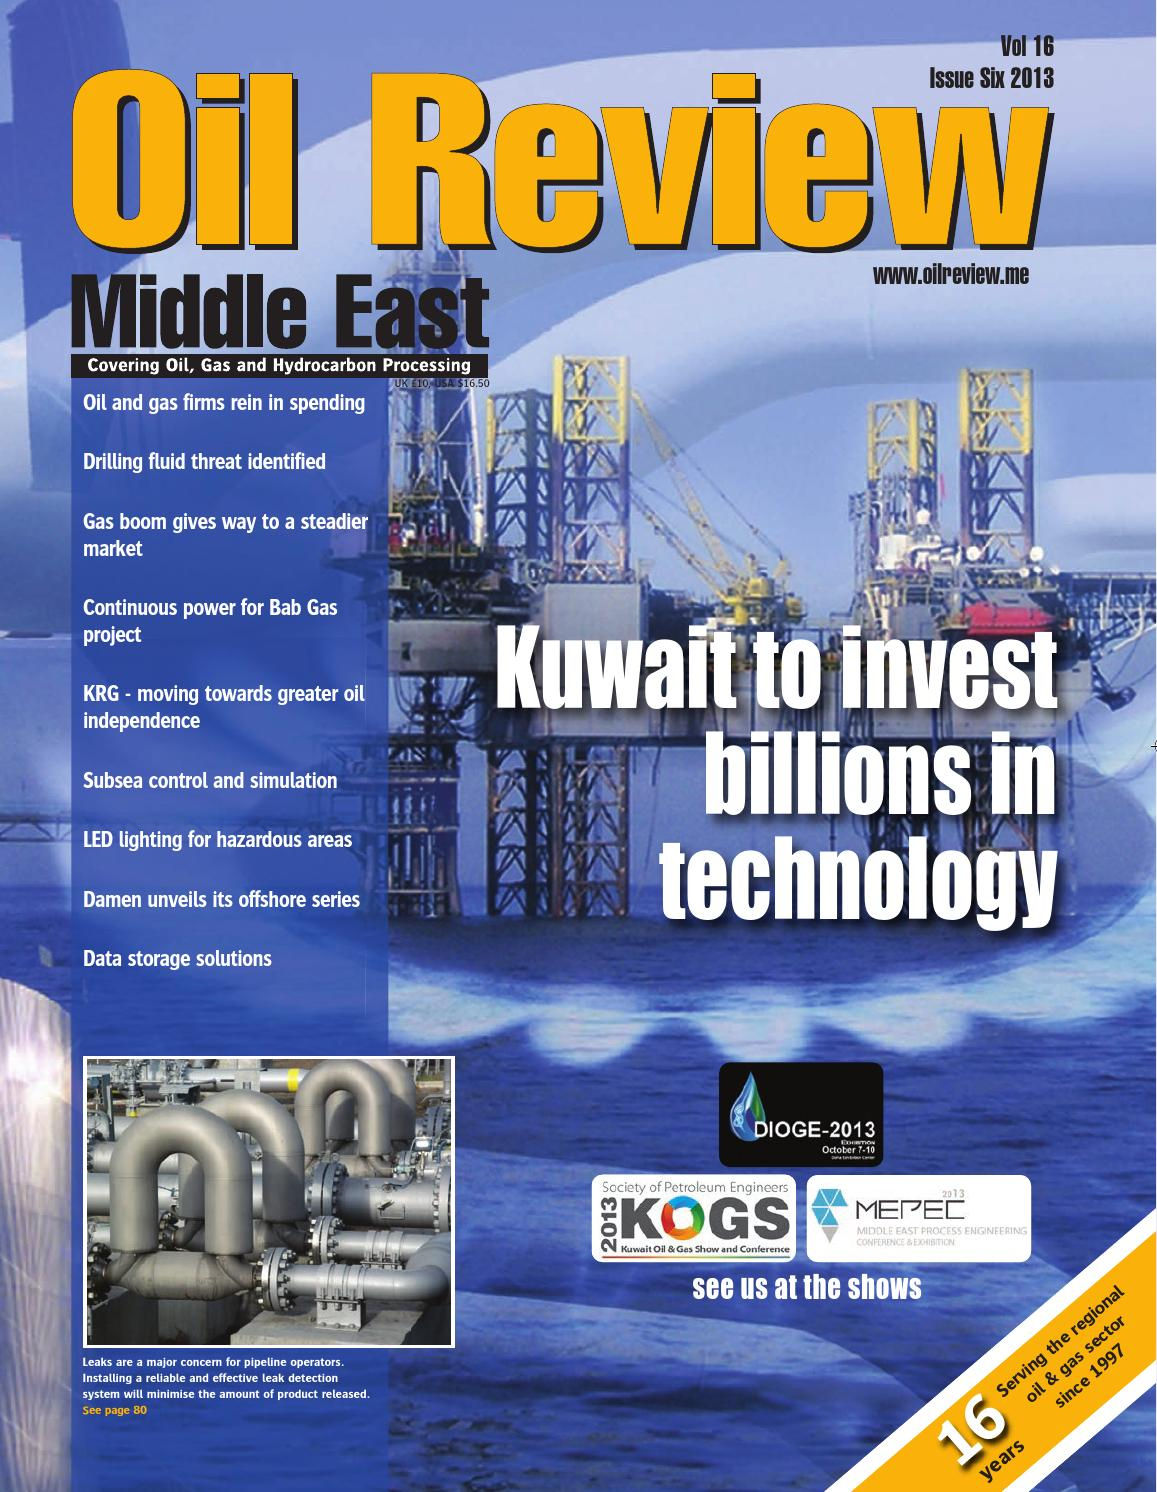 Oil Review Middle East 6 2013 By Alain Charles Publishing